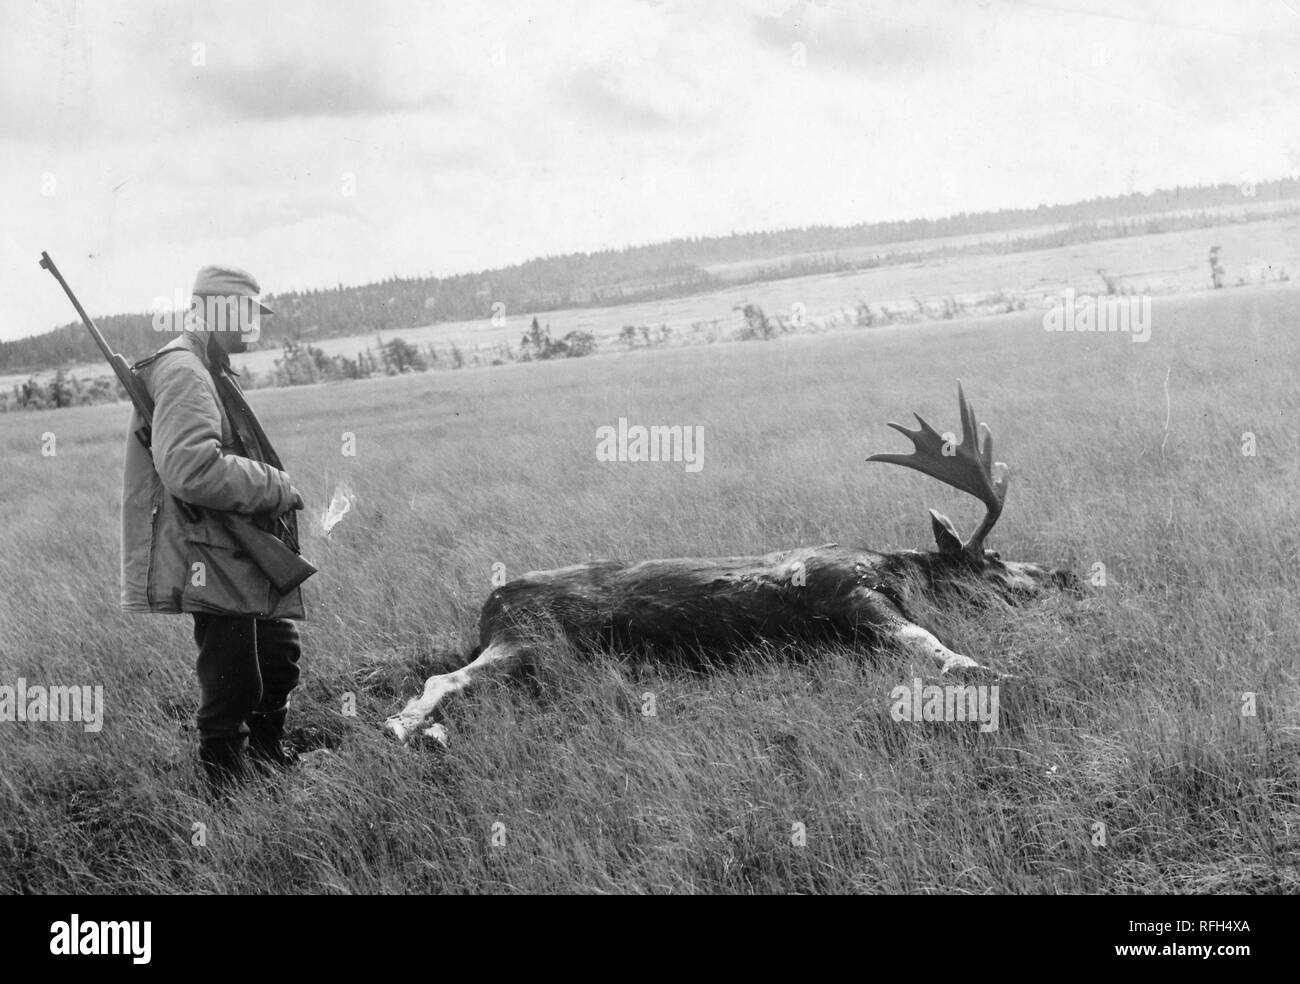 Black and white photograph, shot on an angle, of a middle-aged man, standing in full-length profile view, wearing a hunting jacket and cap, with a rifle slung over his shoulder, and with a dead deer with large antlers, likely a Caribou or Reindeer (Rangifer tarandus) lying in the grass at his feet; with trees and a body of water visible in the background, photographed during a hunting and fishing trip located in Alaska, USA, 1955. () - Stock Image